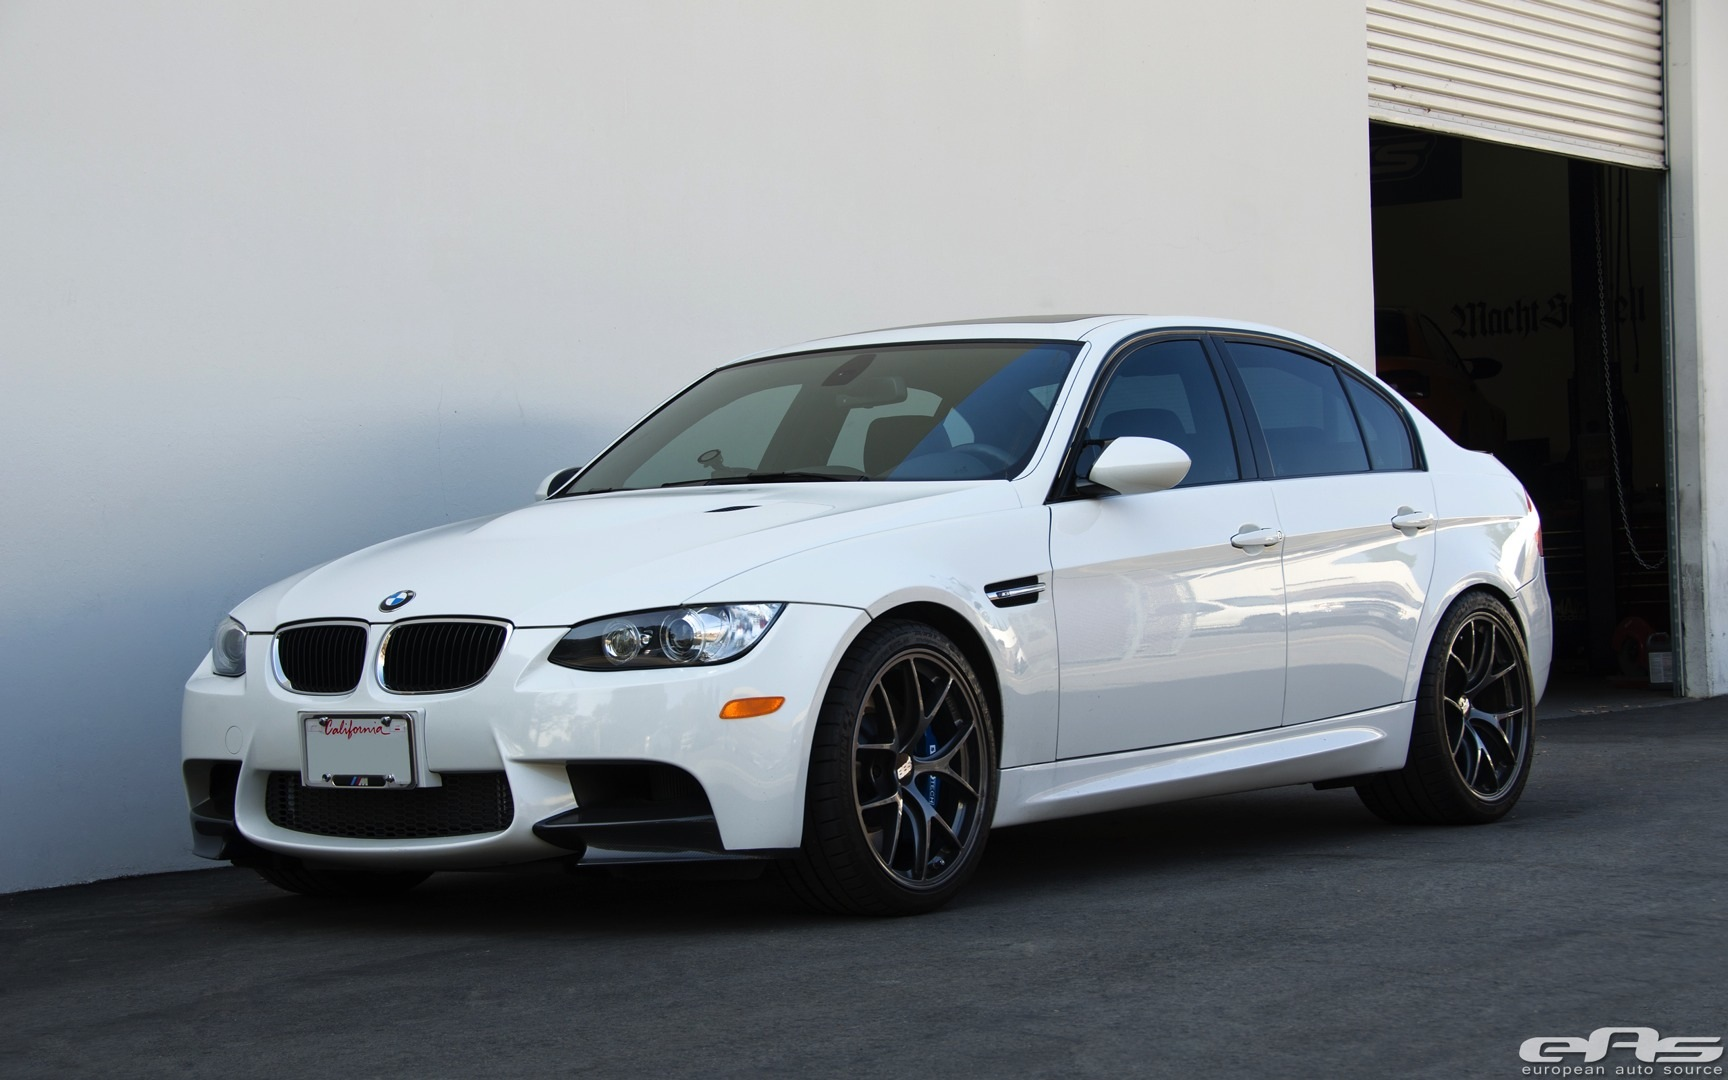 alpine white bmw e90 m3 gets new brakes at eas. Black Bedroom Furniture Sets. Home Design Ideas